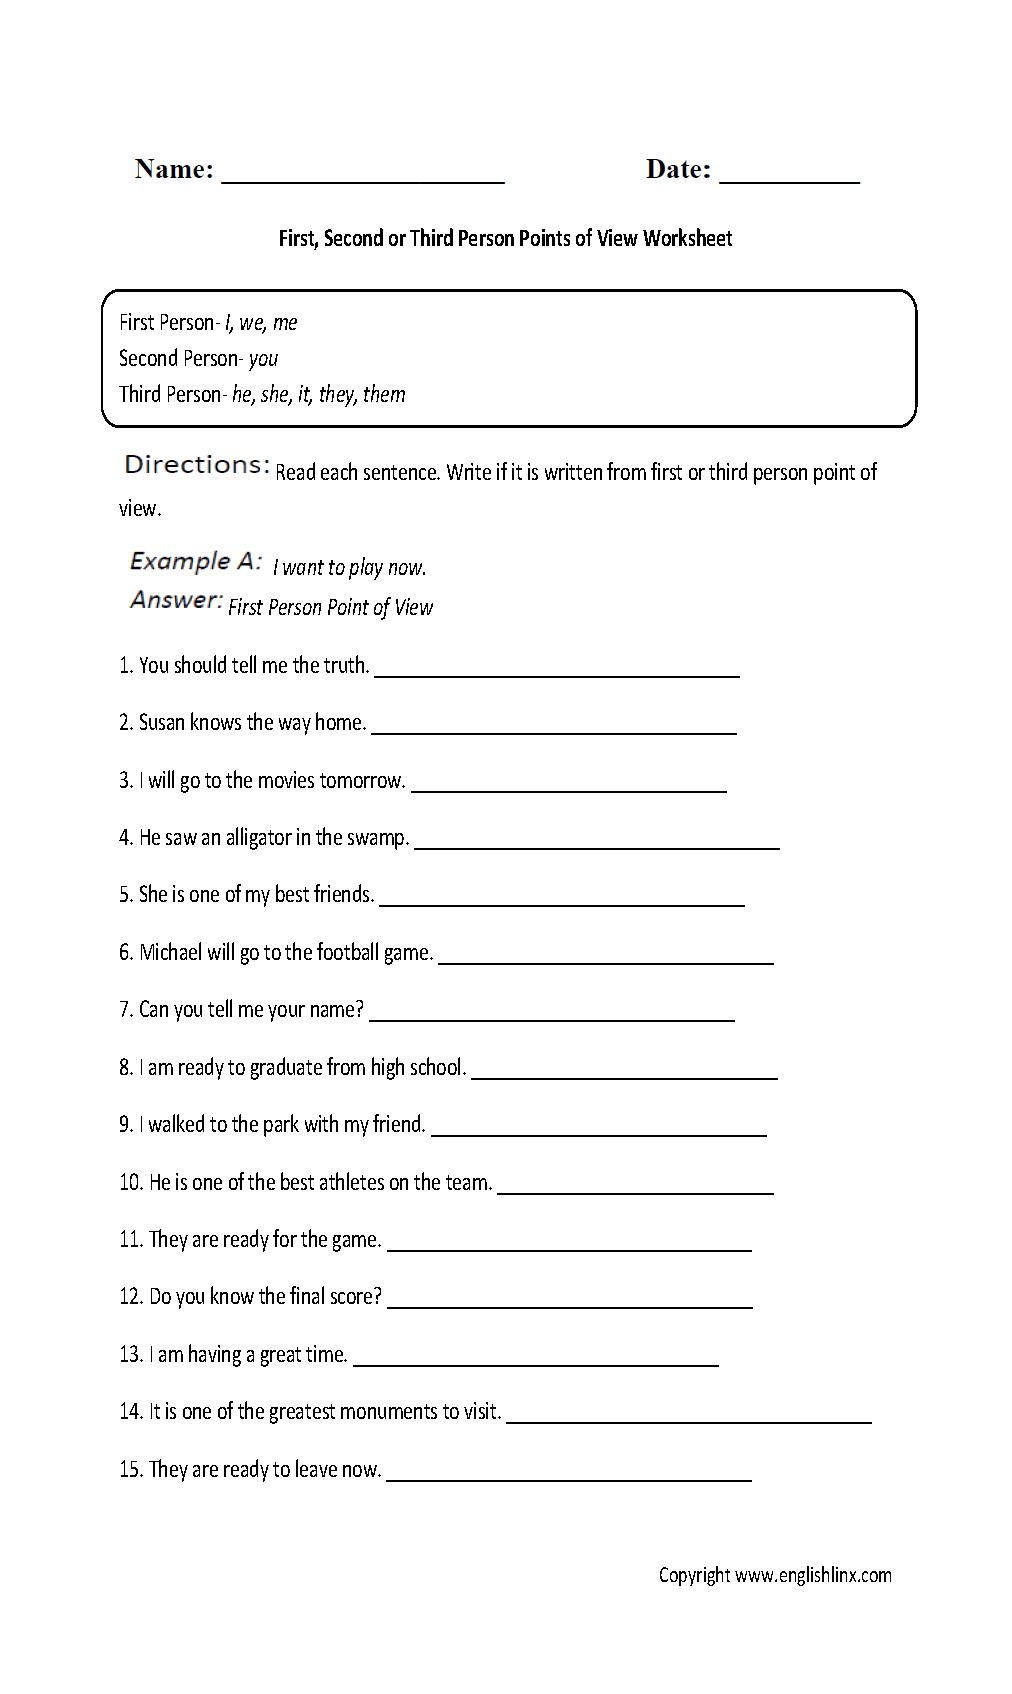 Weirdmailus  Pleasant Englishlinxcom  Point Of View Worksheets With Licious Point Of View Worksheet With Endearing Small Business Expense Worksheet Also Electron Dot Worksheet In Addition Alphabet Worksheet For Kindergarten And Simple Science Worksheets As Well As Graphing Coordinates To Make A Picture Worksheet Additionally Prefix And Suffix Worksheets For Middle School From Englishlinxcom With Weirdmailus  Licious Englishlinxcom  Point Of View Worksheets With Endearing Point Of View Worksheet And Pleasant Small Business Expense Worksheet Also Electron Dot Worksheet In Addition Alphabet Worksheet For Kindergarten From Englishlinxcom